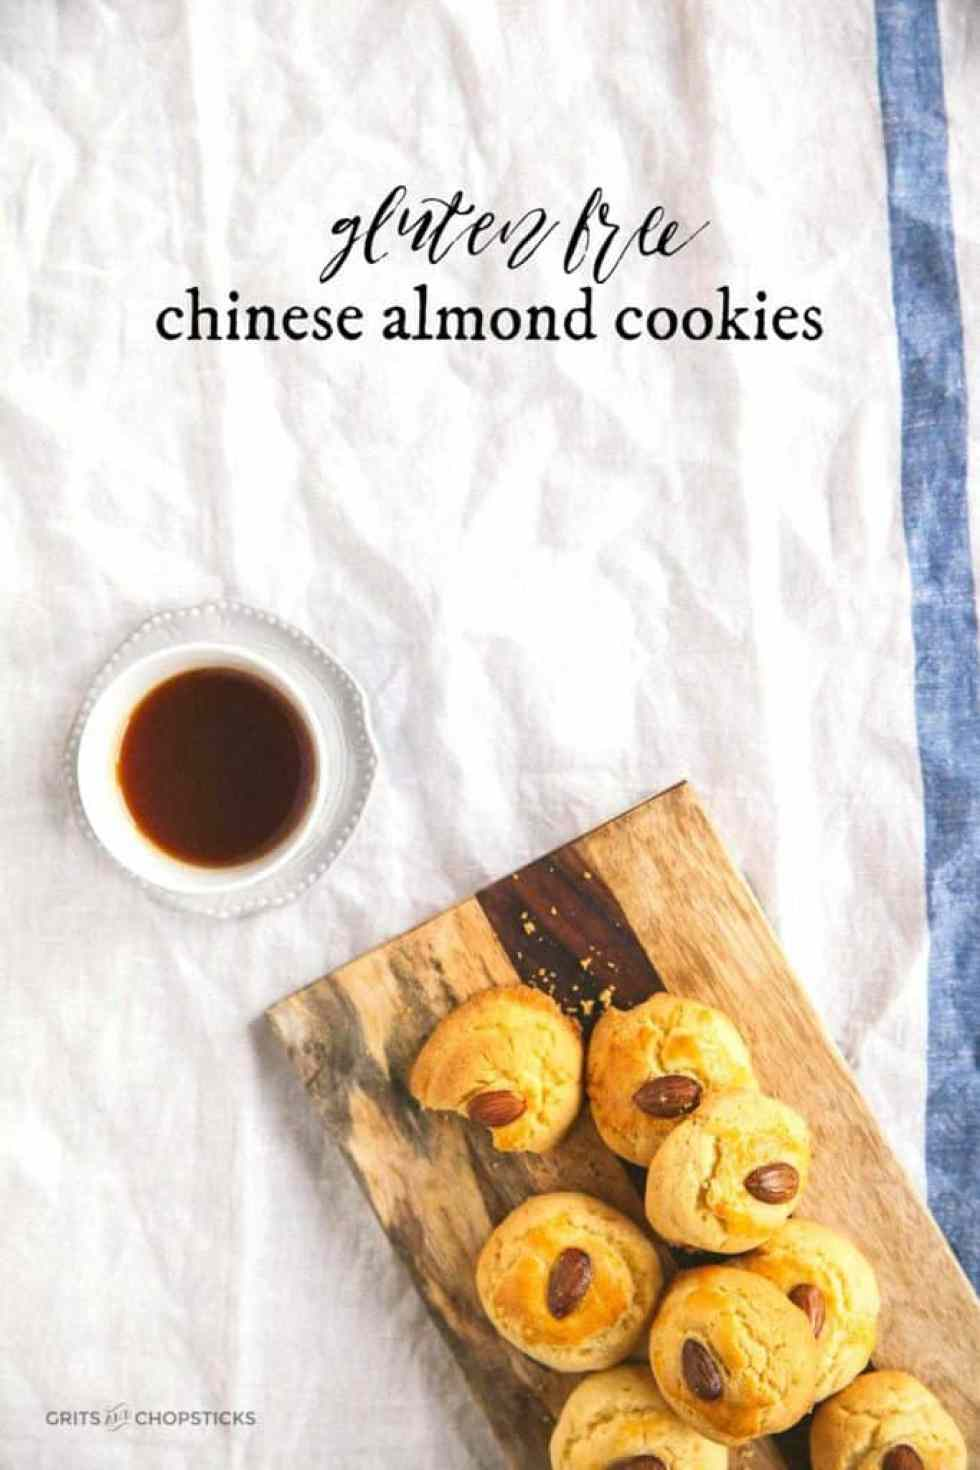 Make these gluten free Chinese almond cookies to celebrate the Year of the Rooster